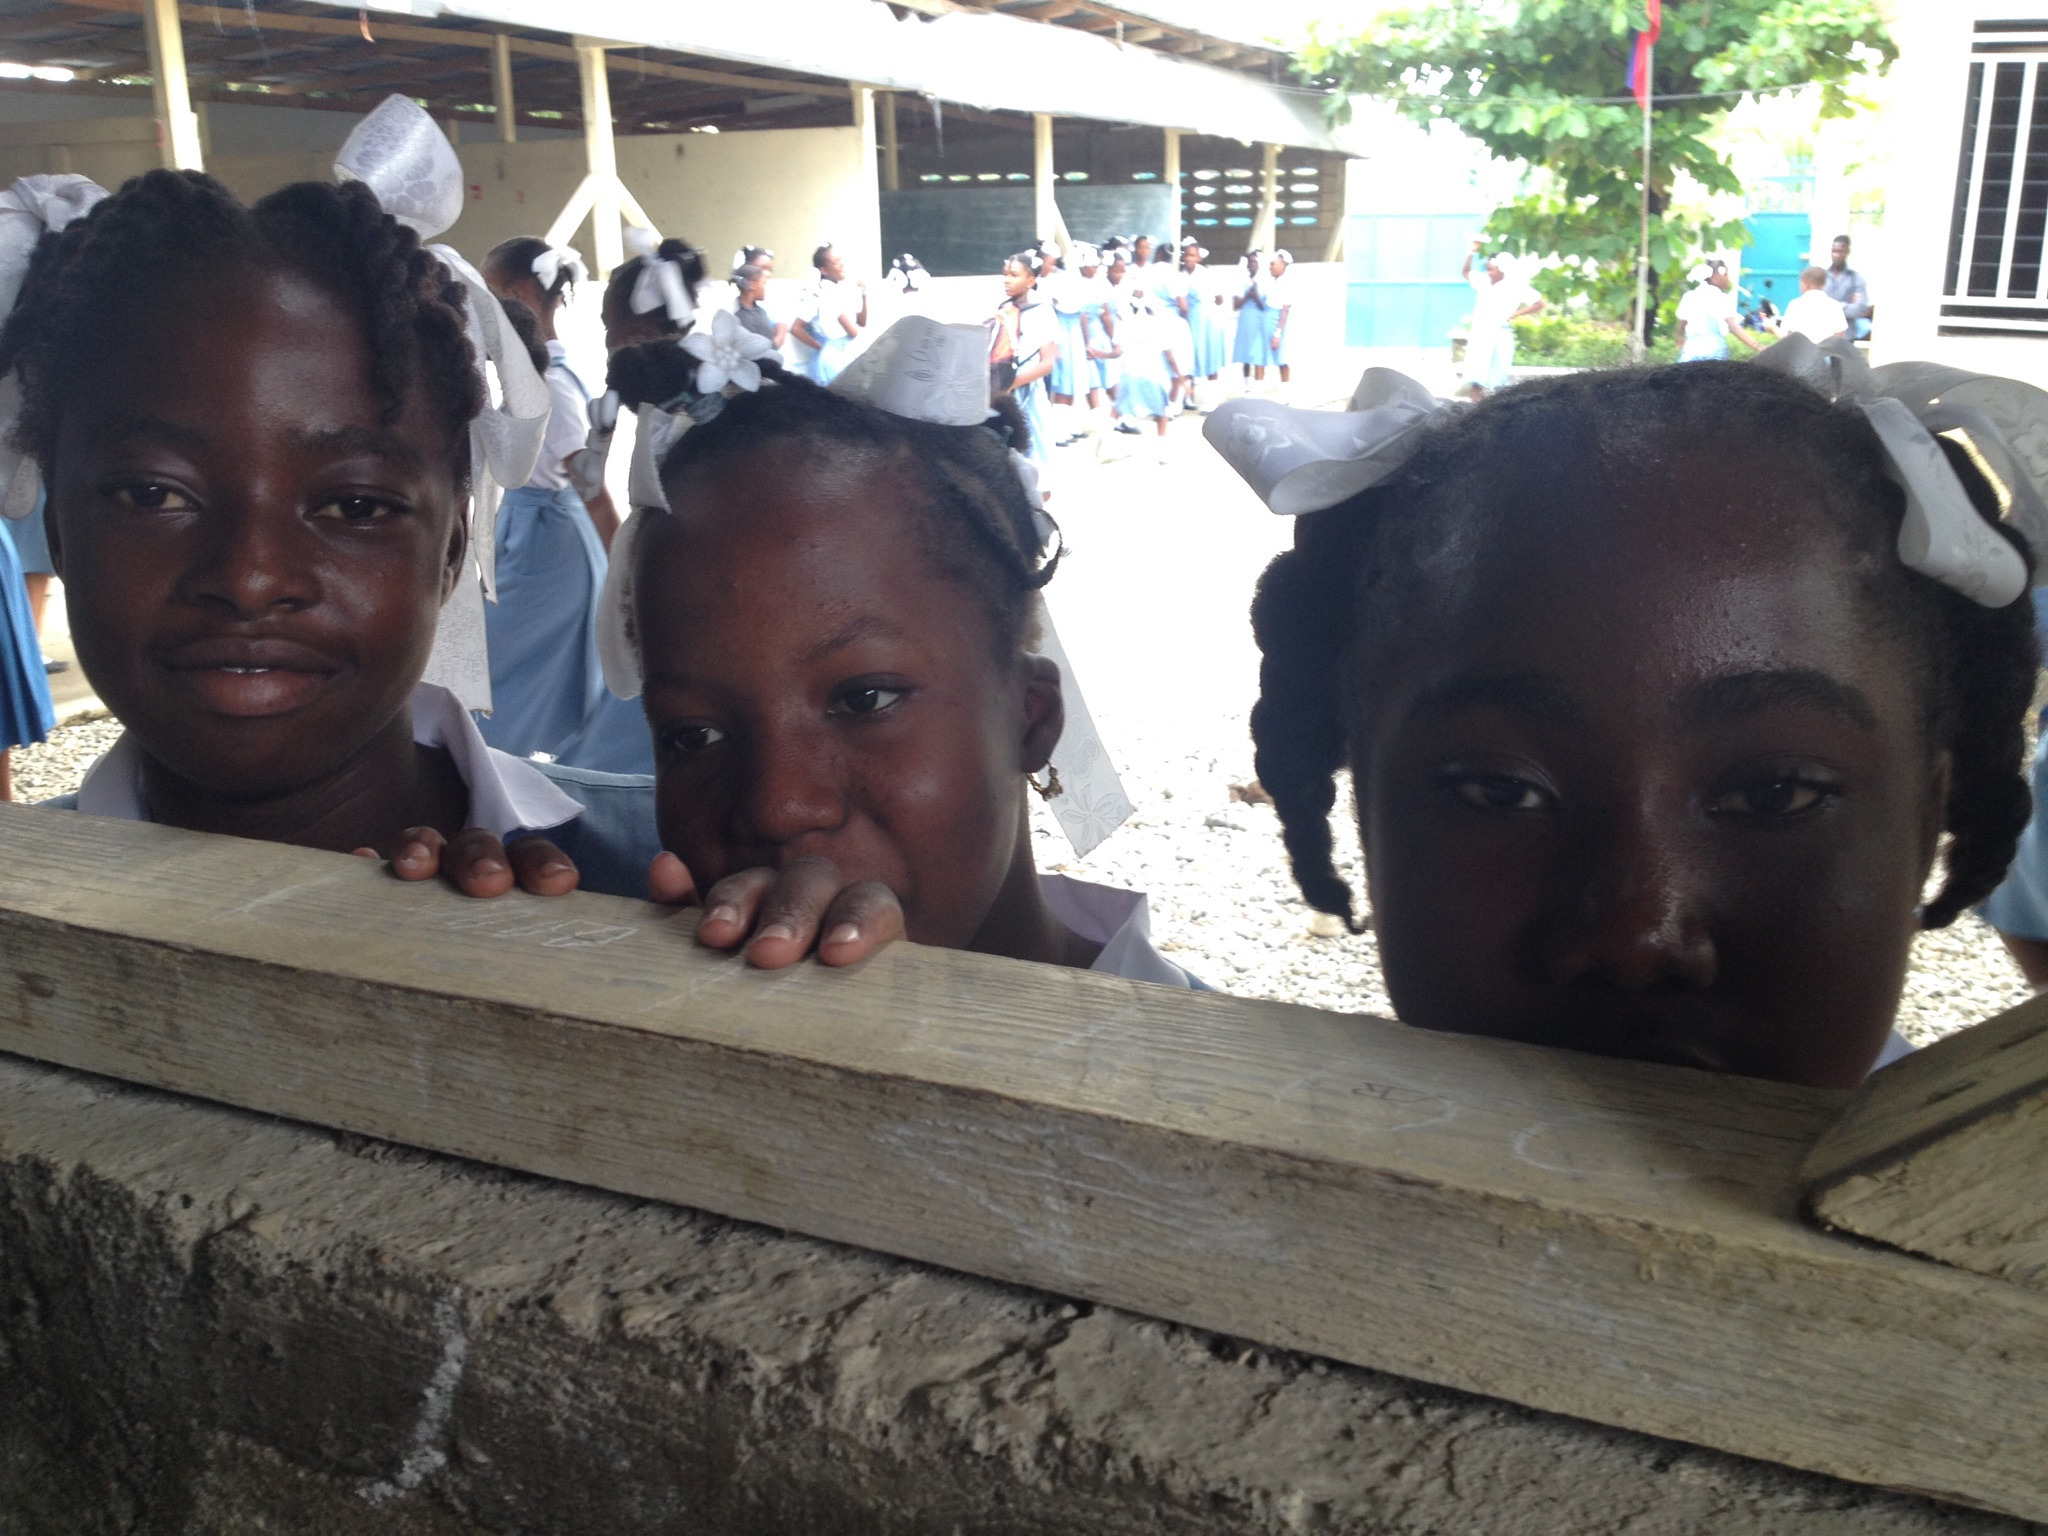 Students during recess peeking over classroom wall